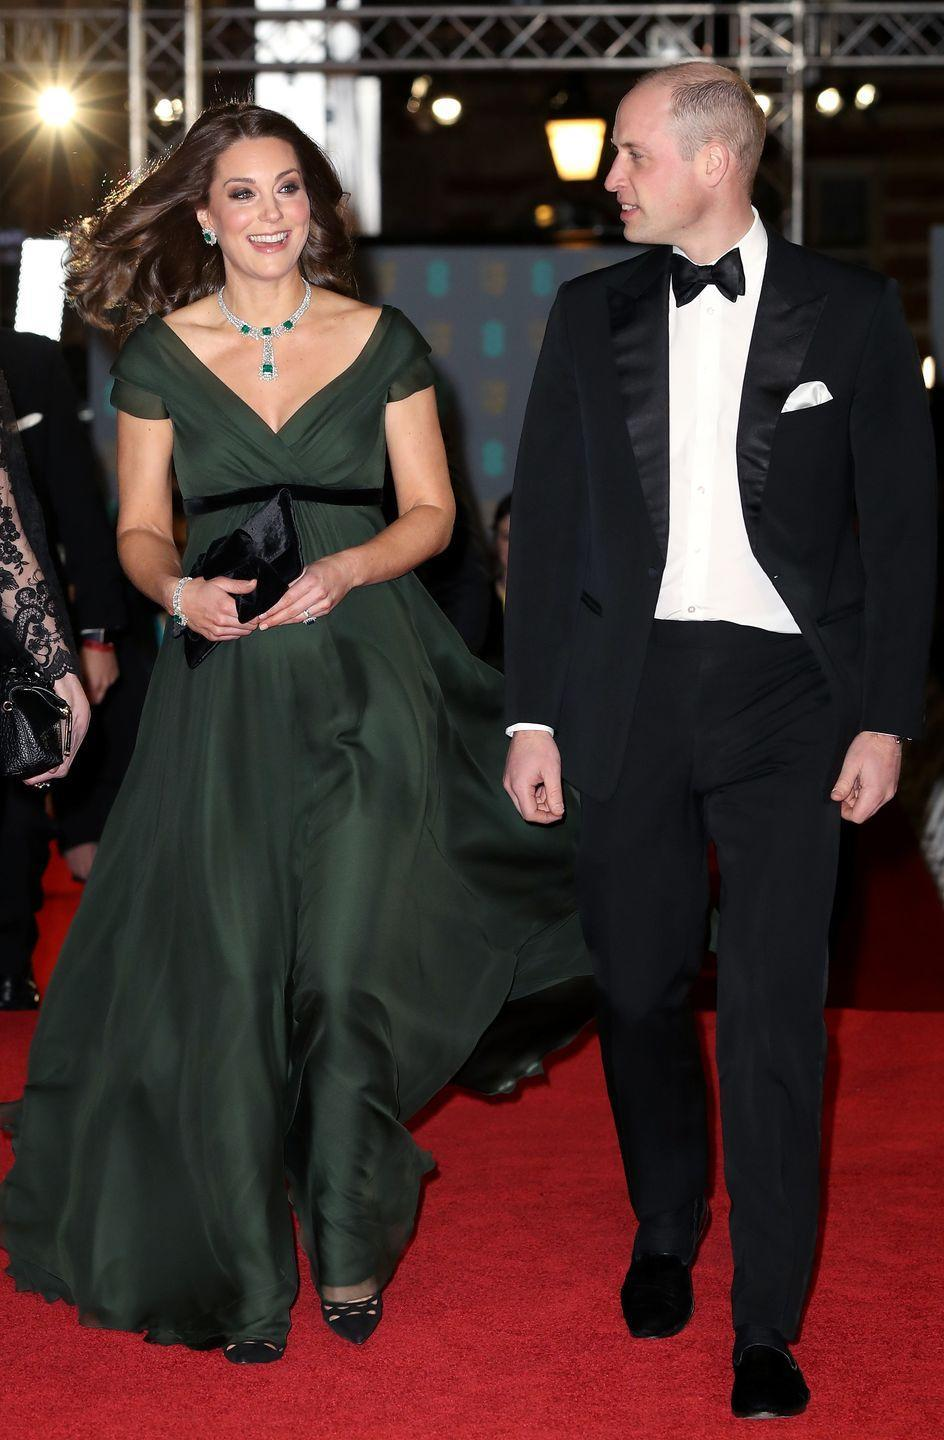 "<p>Duchess Kate and Will dressed up for a night out at the BAFTA Awards in London. Despite <a href=""https://www.townandcountrymag.com/style/fashion-trends/a16868409/kate-middleton-baftas-black-dress-times-up/"" rel=""nofollow noopener"" target=""_blank"" data-ylk=""slk:the BAFTA's all-black dress code in support of the #TimesUp movement"" class=""link rapid-noclick-resp"">the BAFTA's all-black dress code in support of the #TimesUp movement</a>, the Duchess wore a green Jenny Packham gown with emerald jewelry, Prada heels, and a black clutch.</p>"